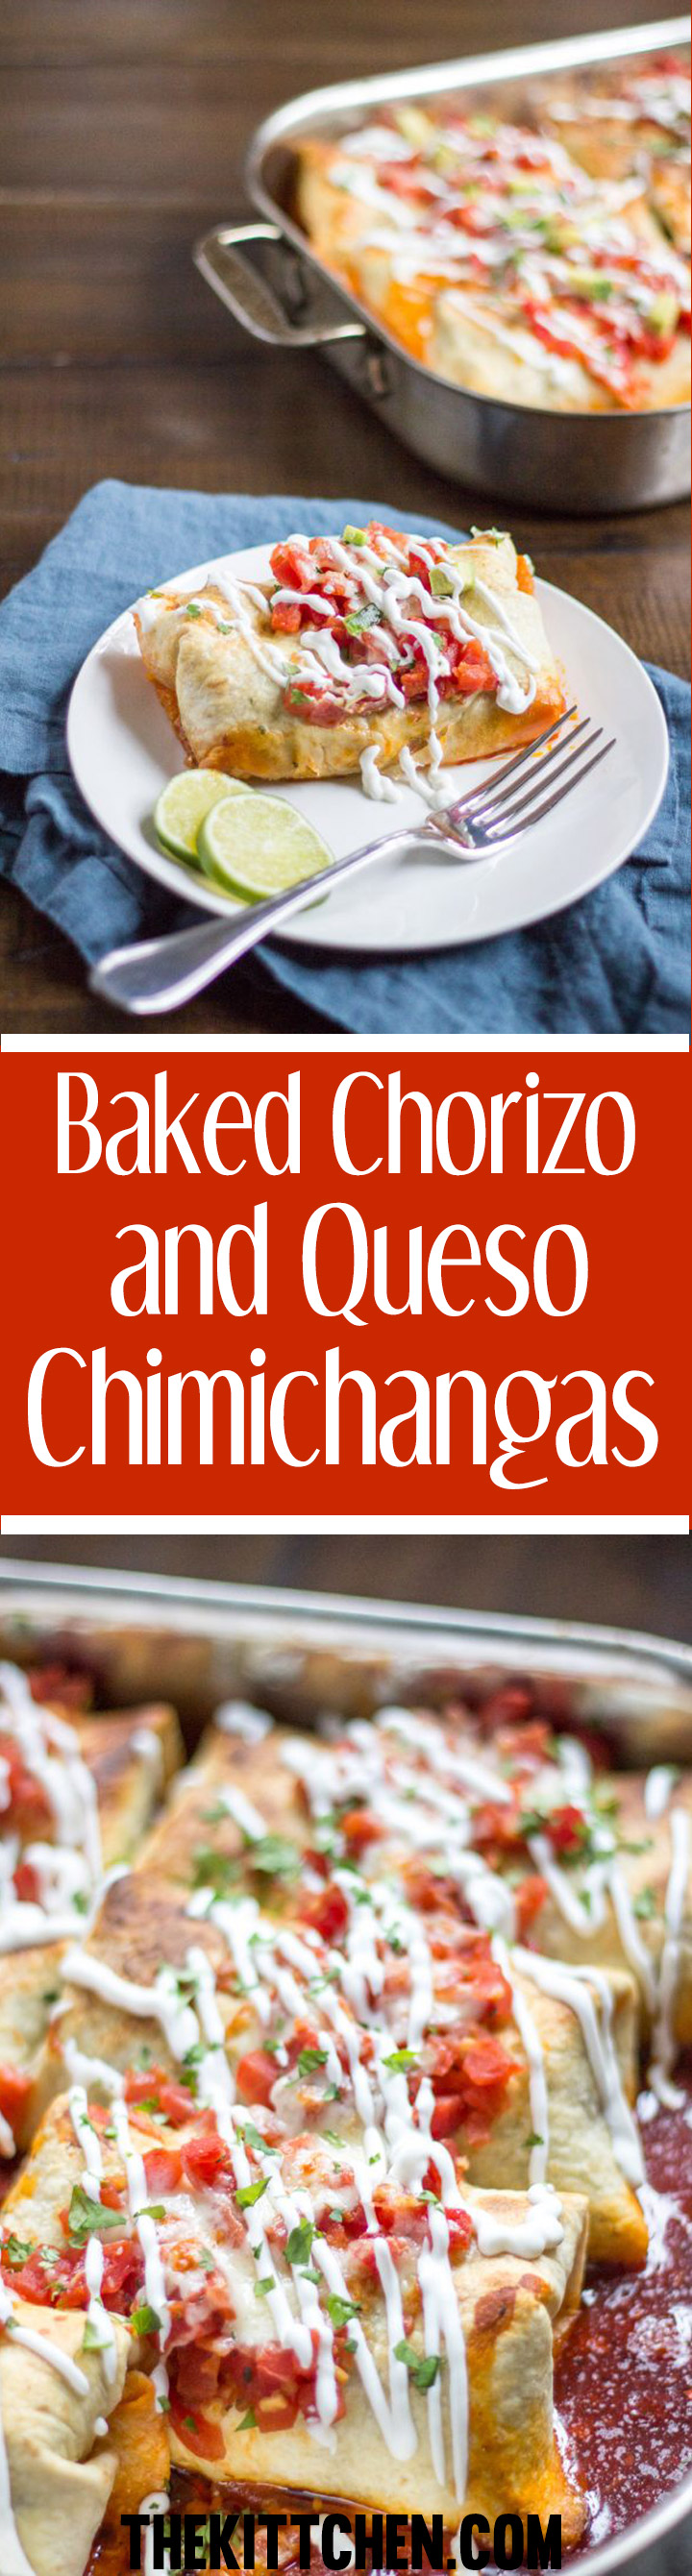 Baked Chorizo and Queso Chimichangas - an easy and delicious crowd pleasing dinner recipe!